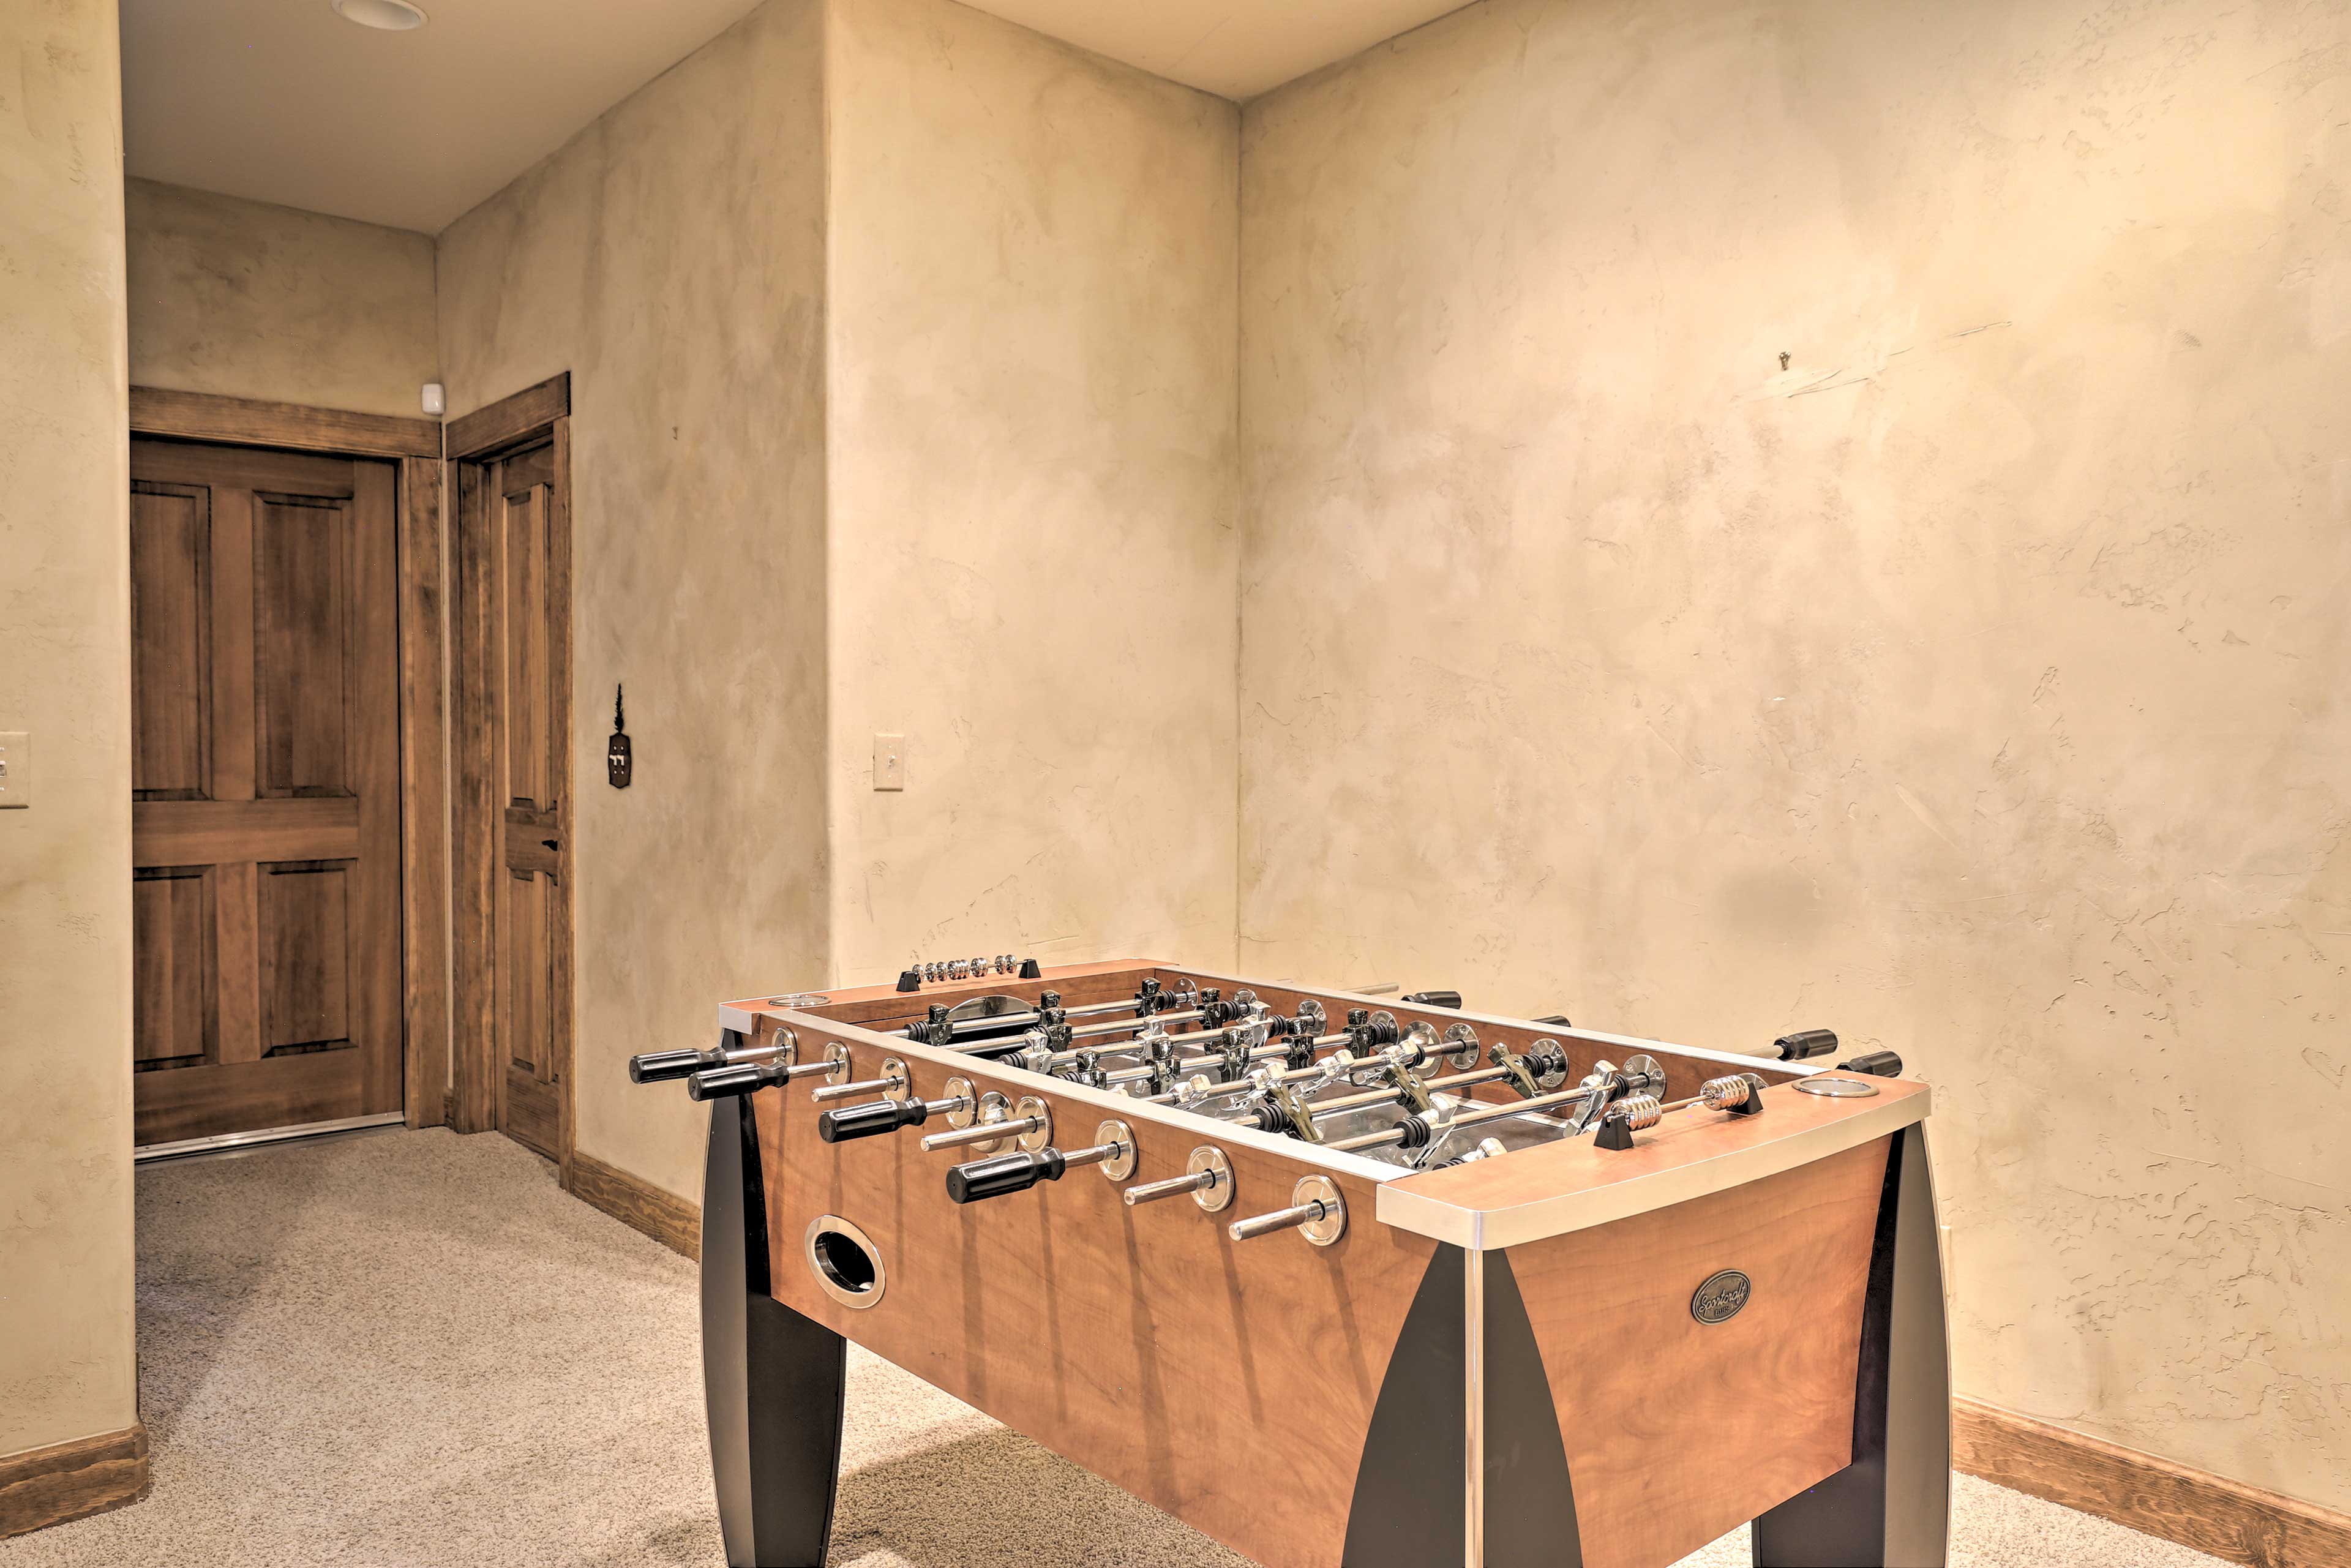 The kids will love playing foosball.